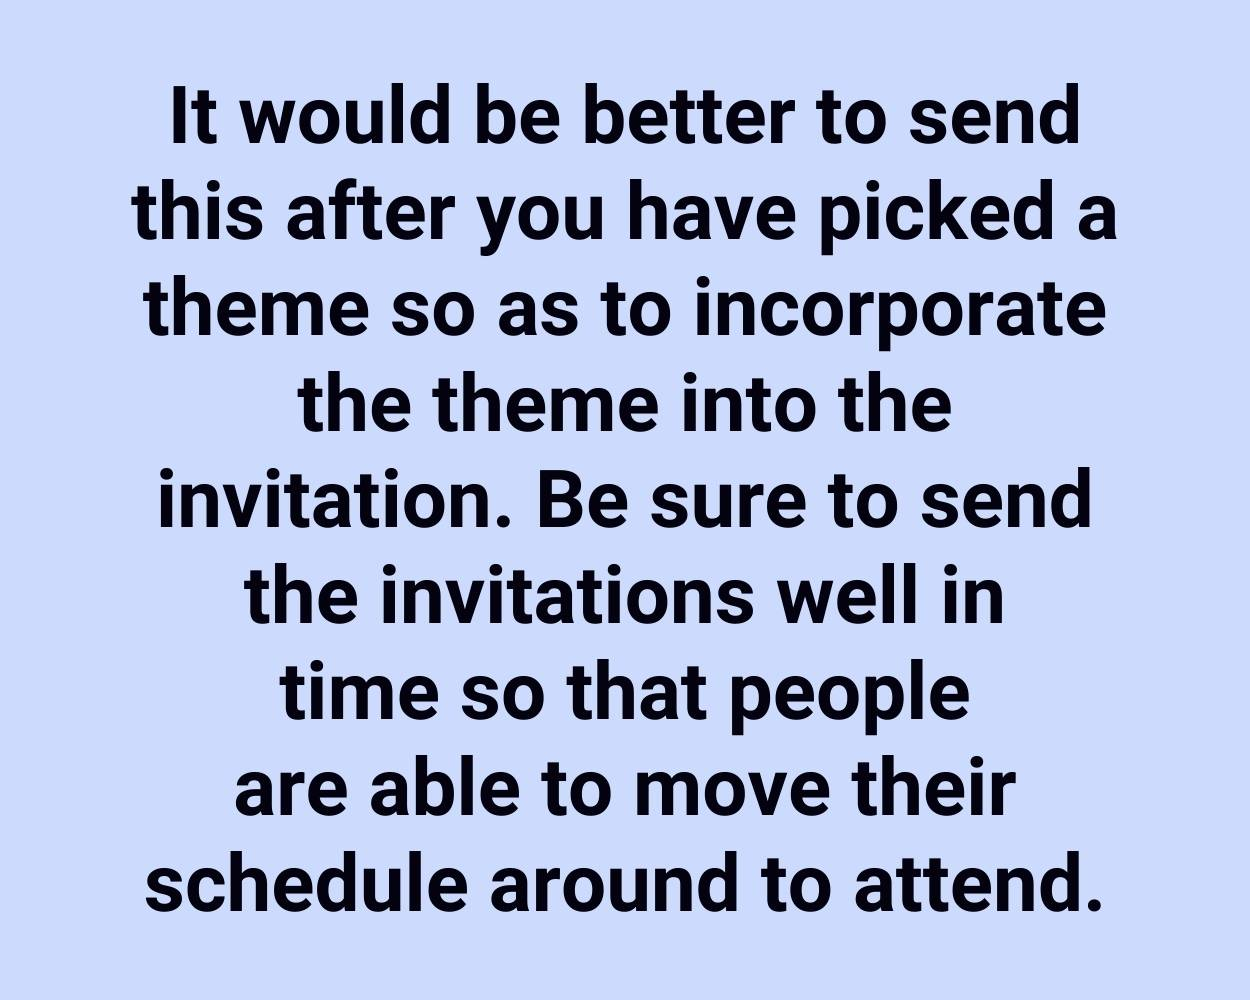 It would be better to send this after you have picked a theme so as to incorporate the theme into the invitation. Be sure to send the invitations well in time so that people are able to move their schedule around to attend.